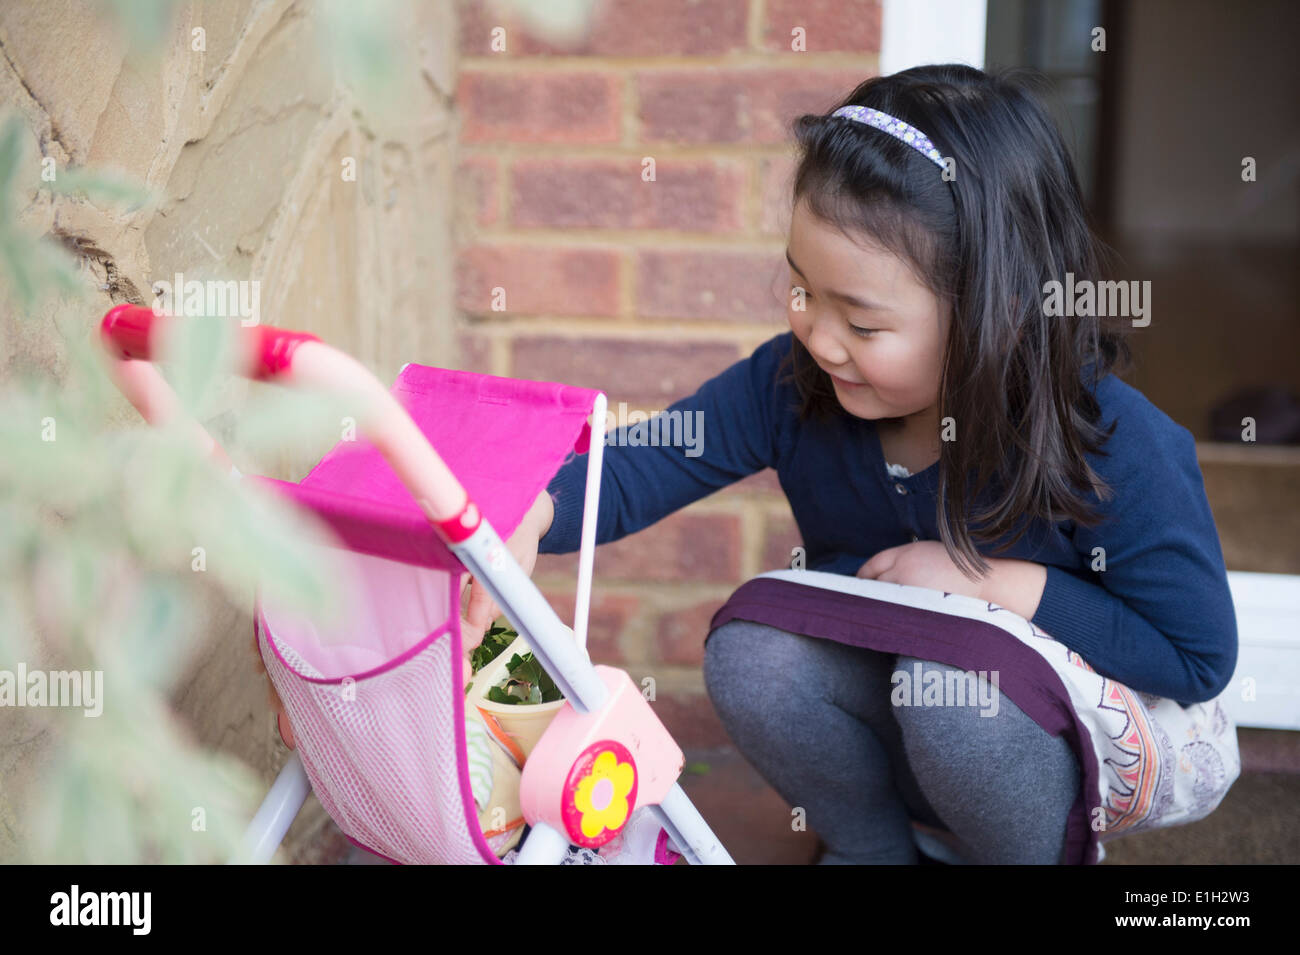 Young girl playing with toy pushchair - Stock Image